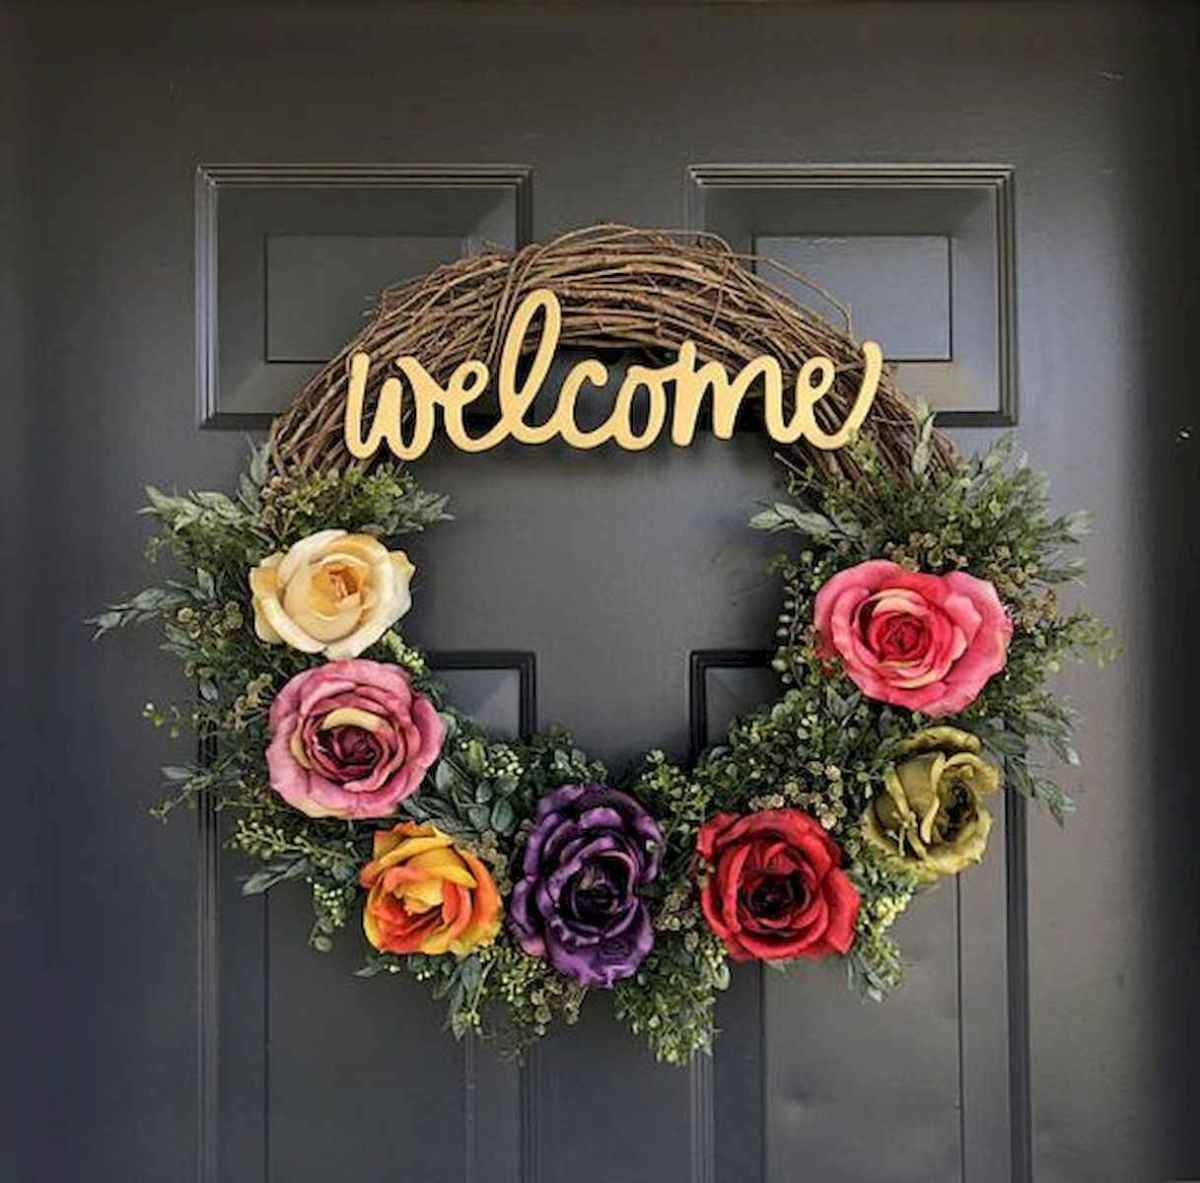 60 Favorite Spring Wreaths for Front Door Design Ideas And Decor (17)